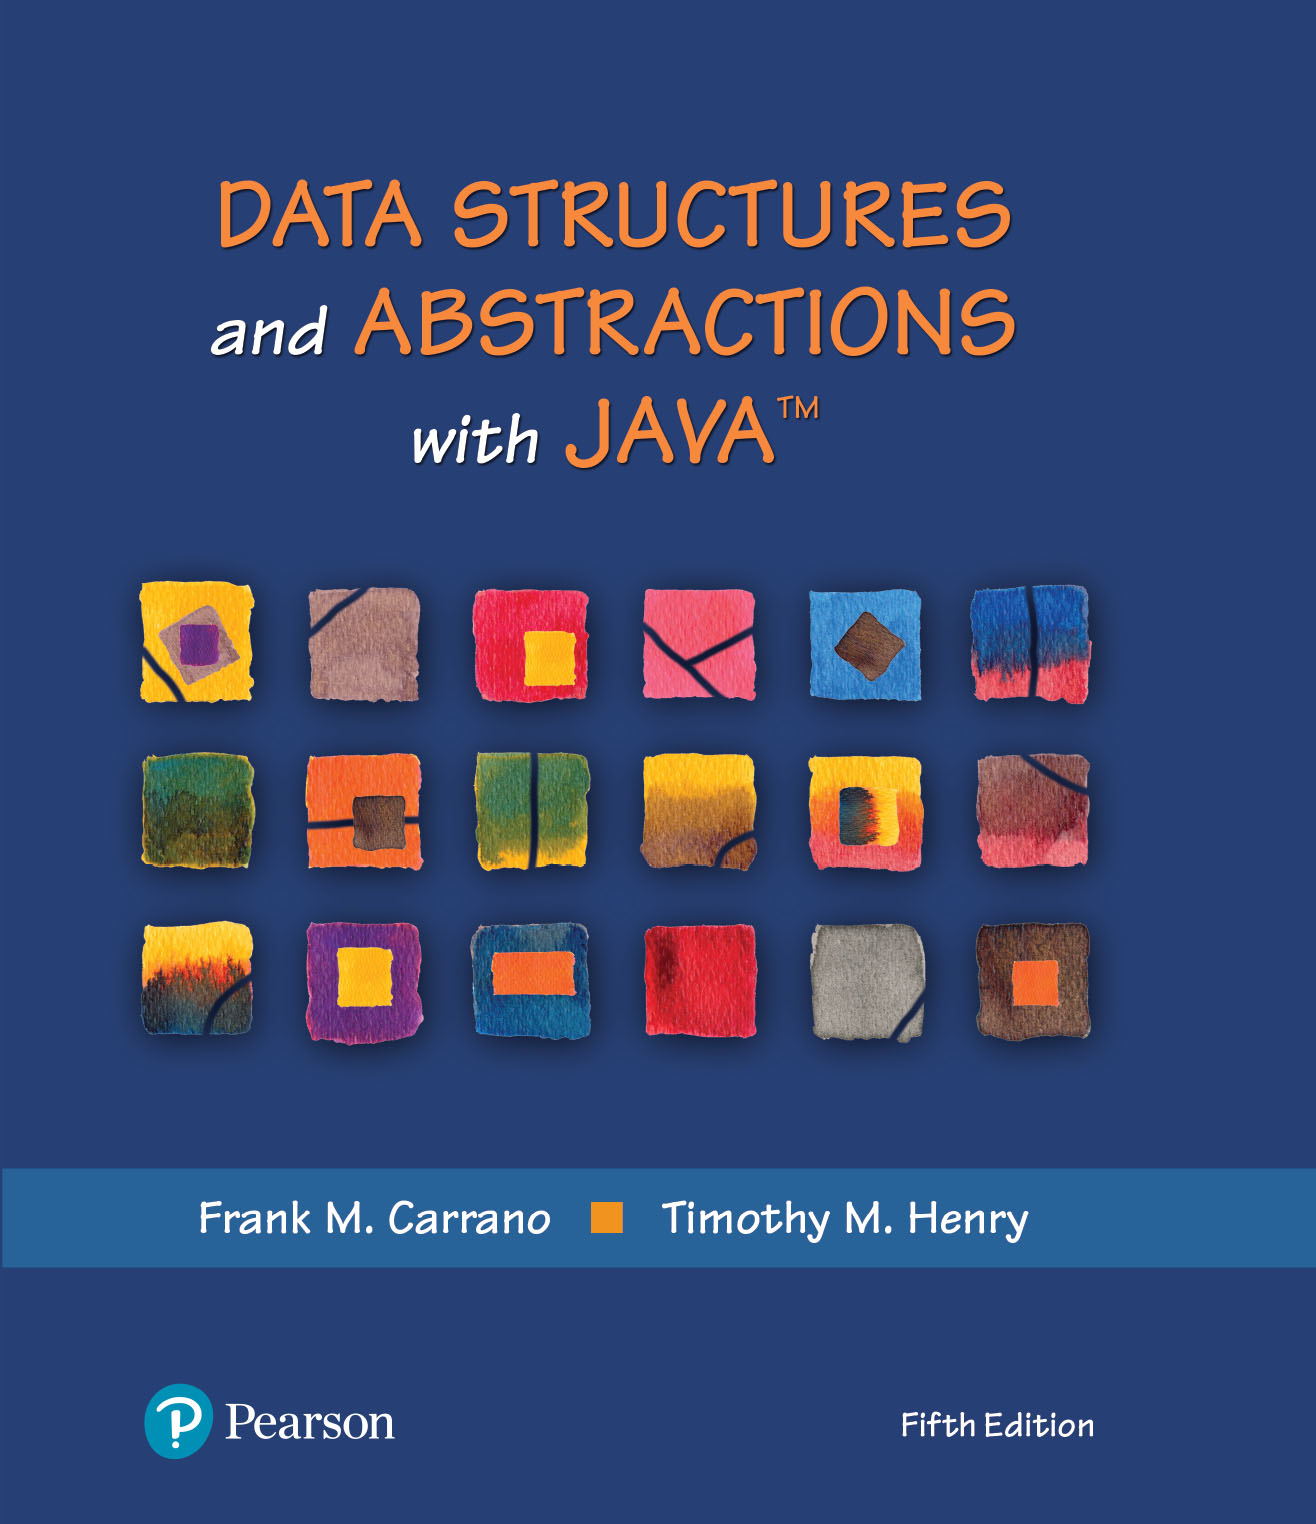 Data Structures and Abstractions with Java - Fifth Edition